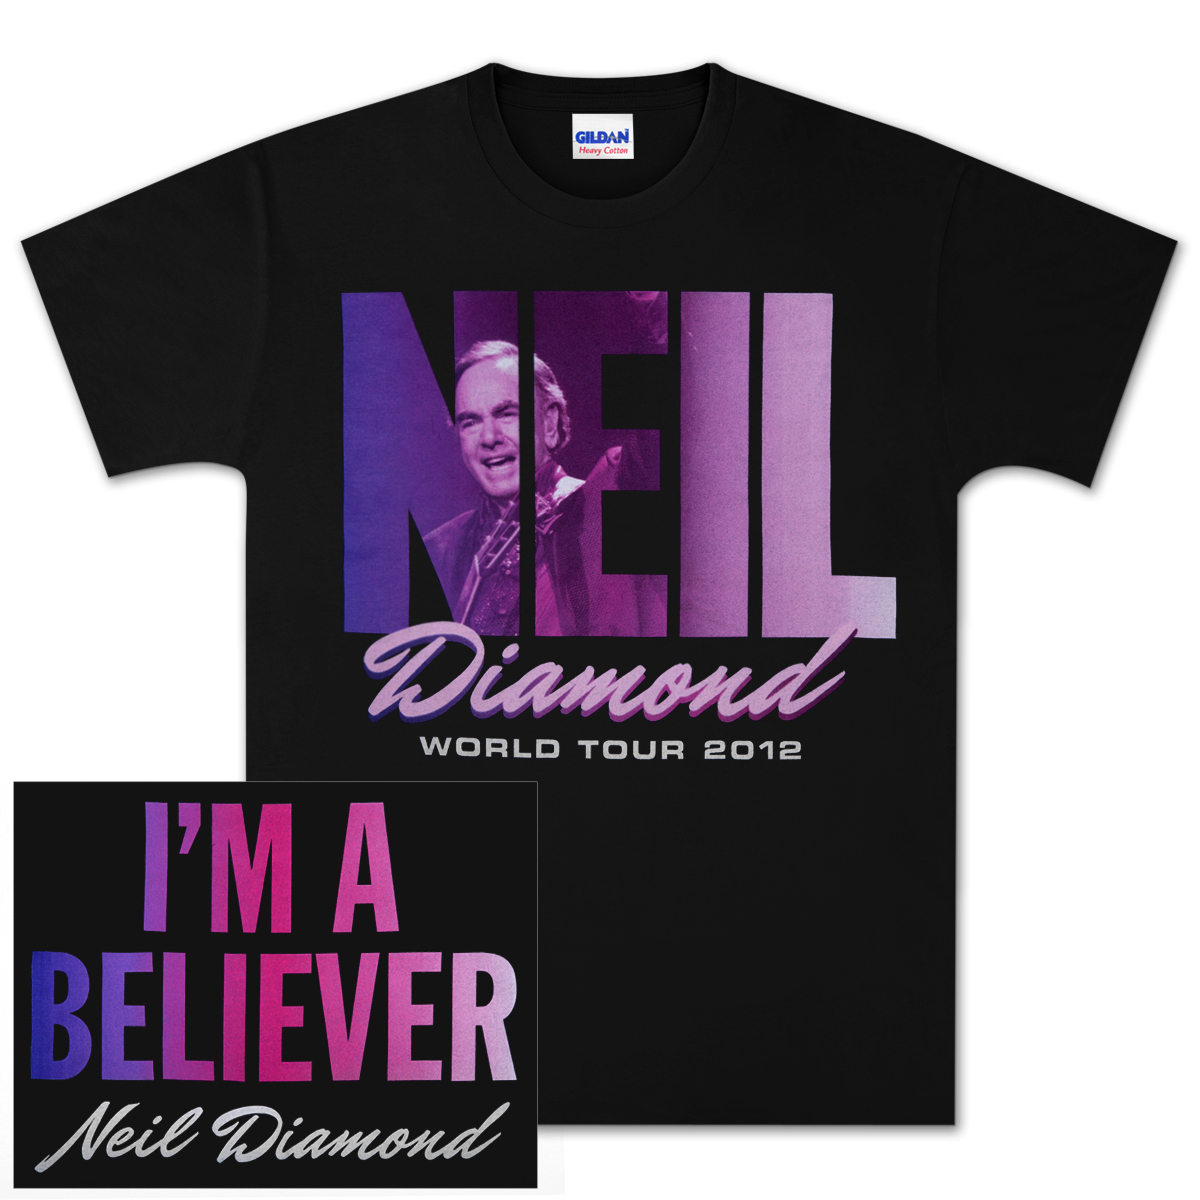 I'm A Believer World Tour 2012 T-Shirt